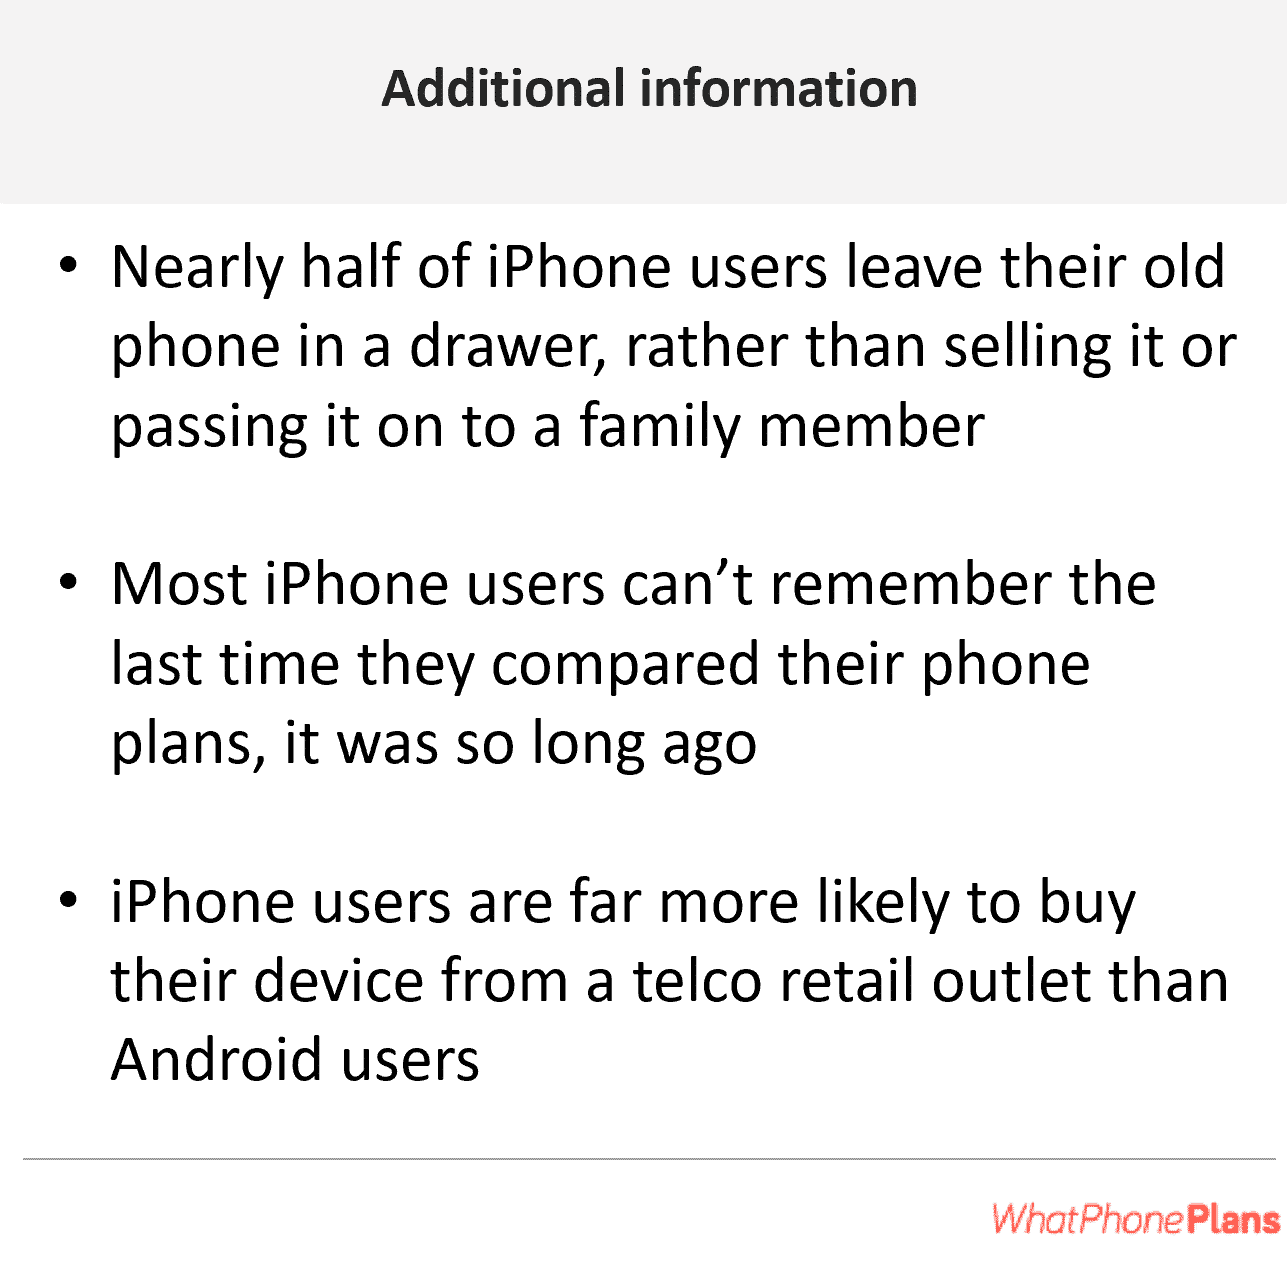 Most iPhone users can't remember the last time they compared their phone plan – because it was so long ago.